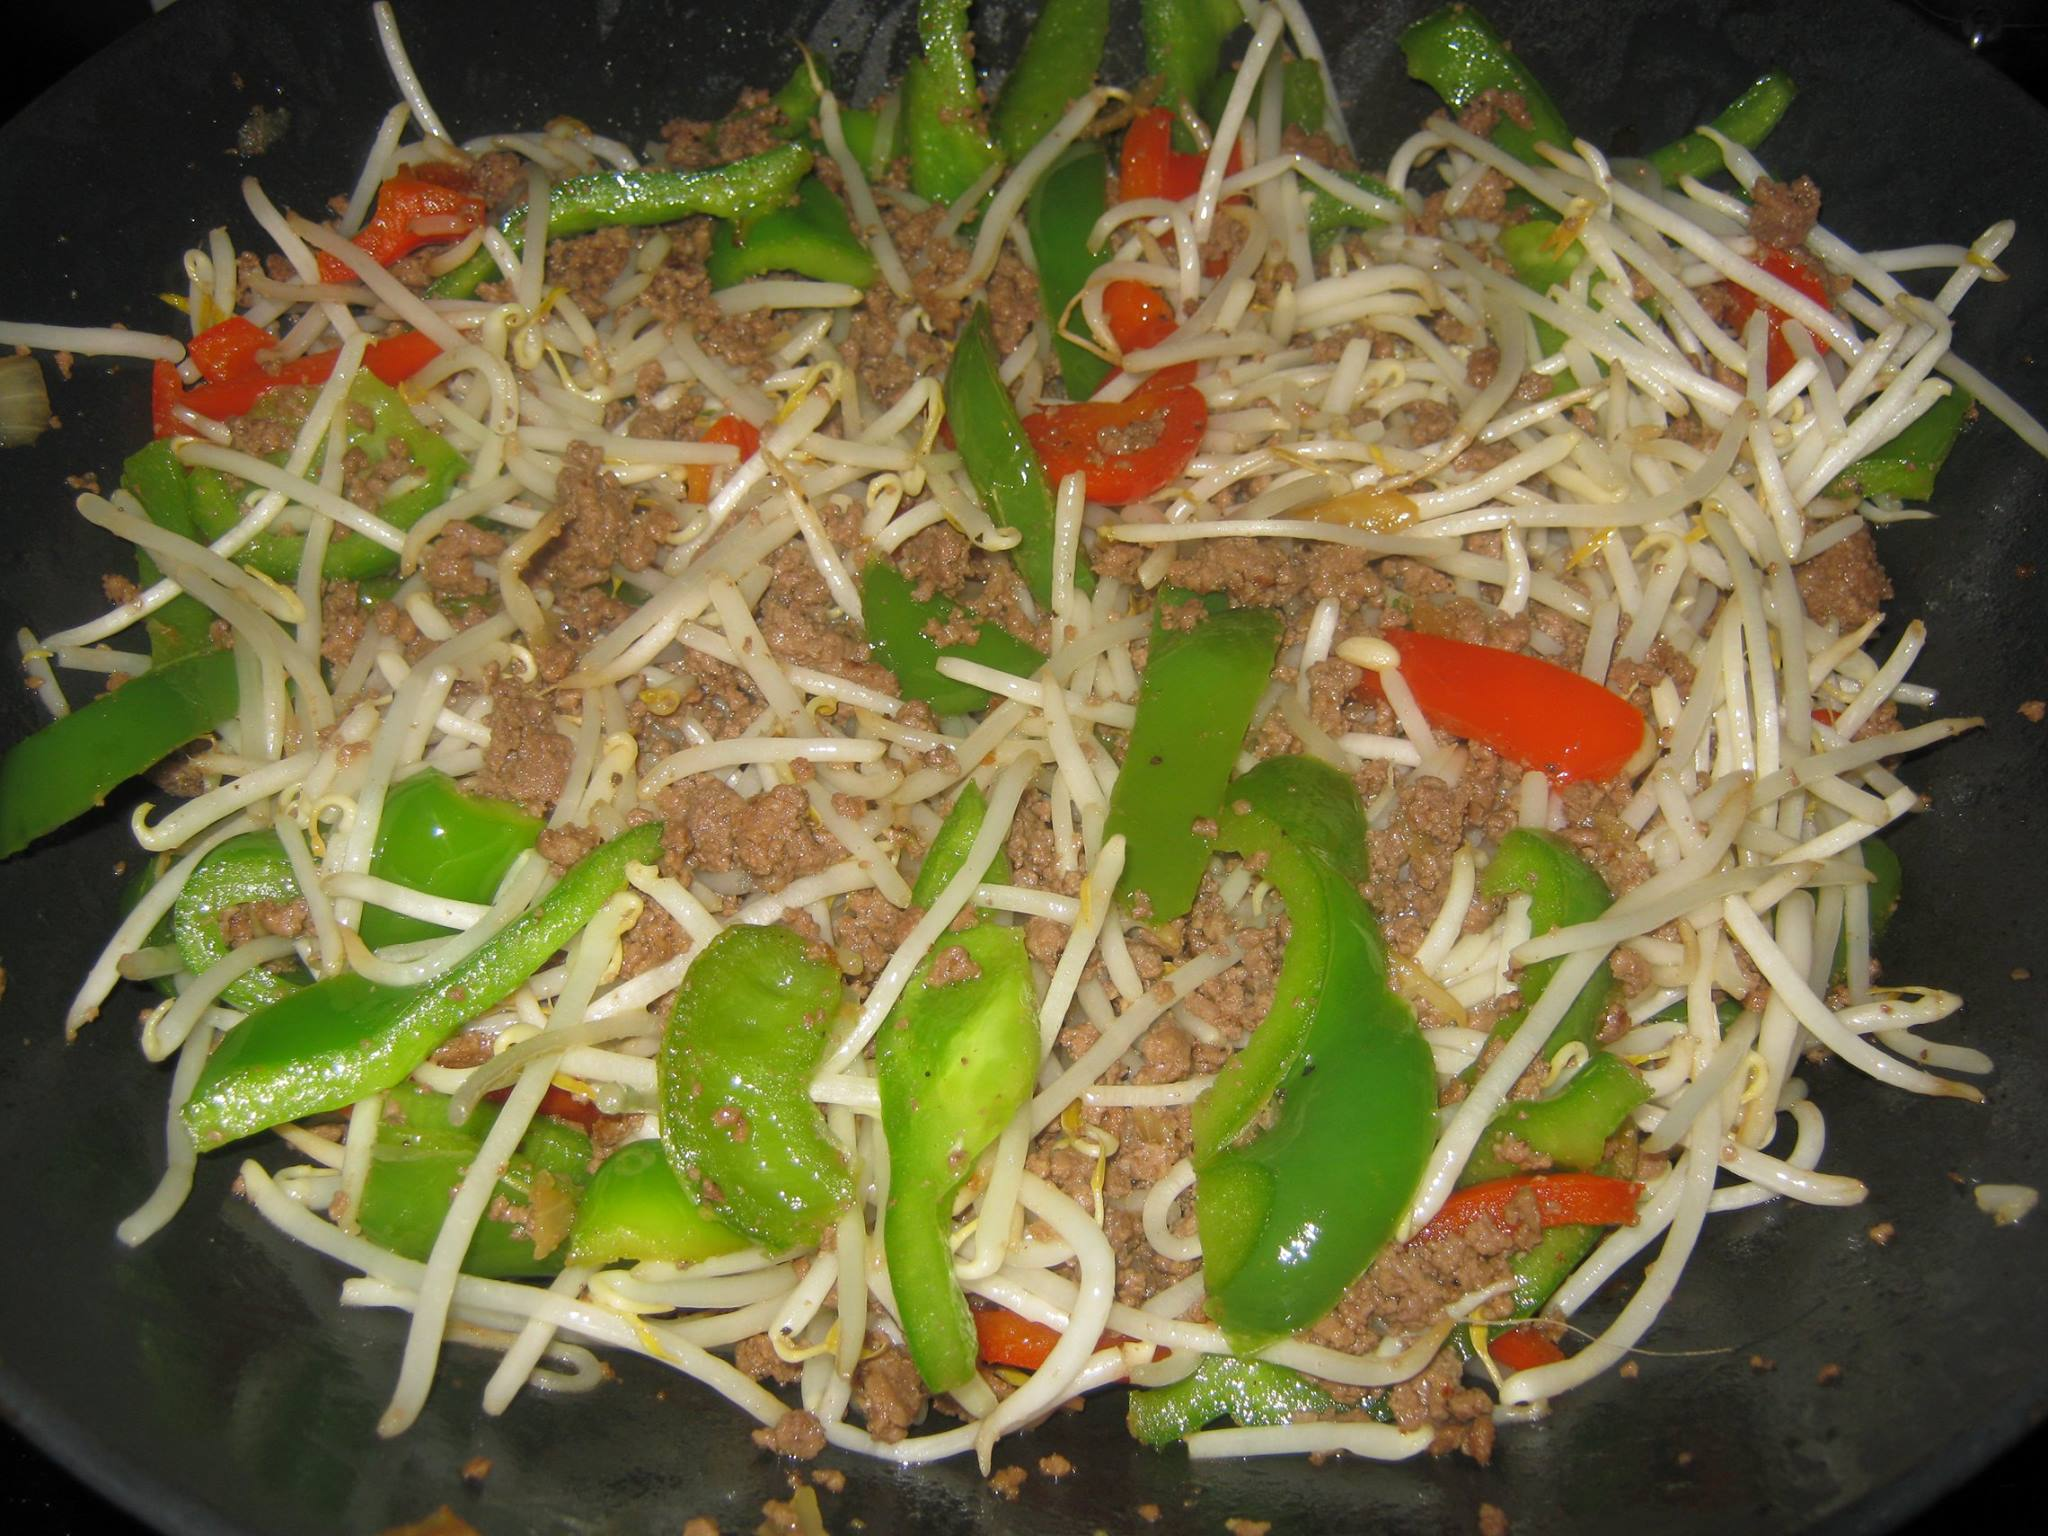 Mixed bell peppers and cooked ground beef and mung beans